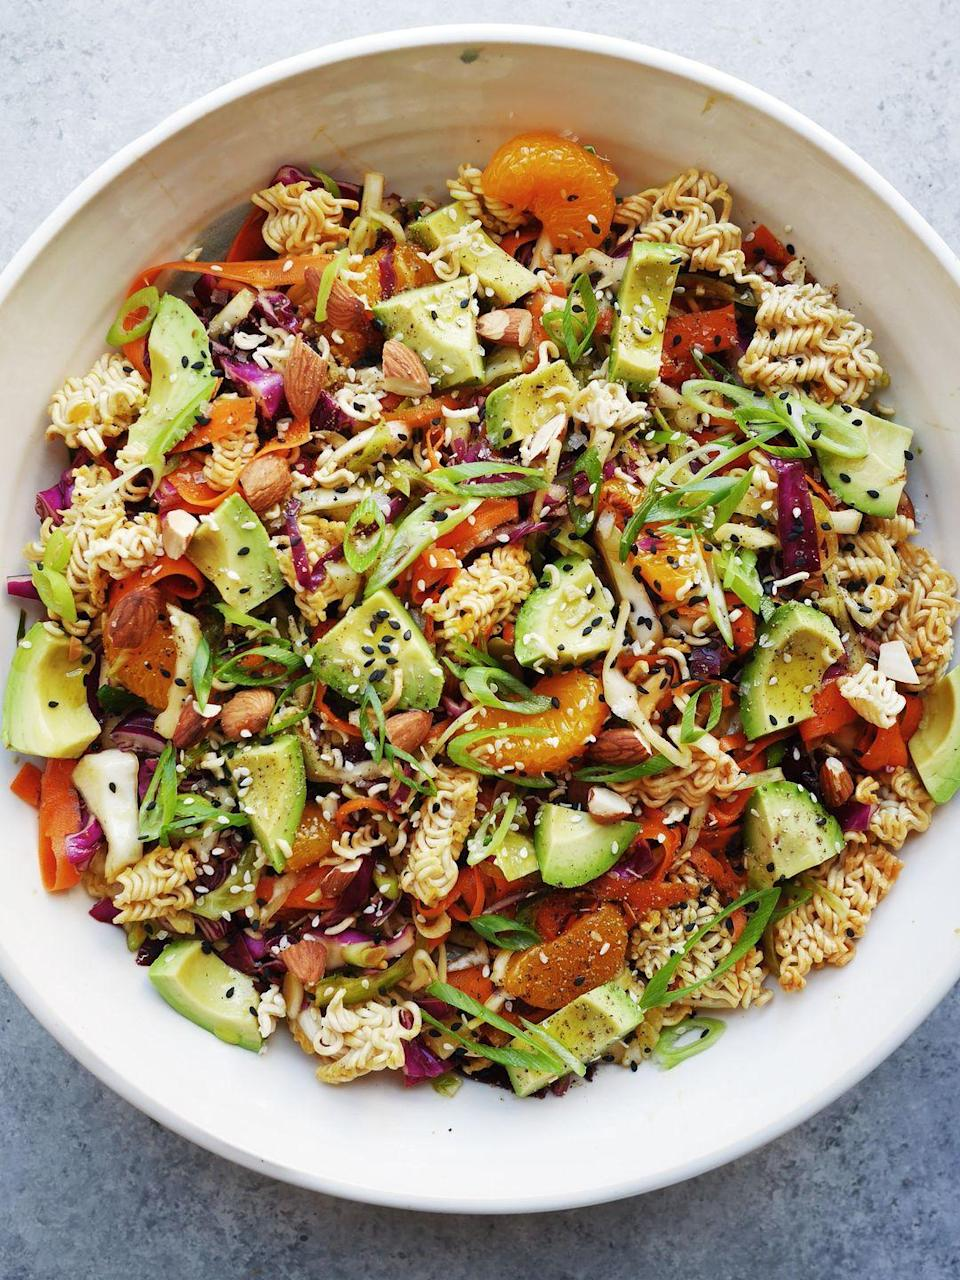 """<p><span>This deserves to be eaten for dinner on a porch. Don't let us down. </span></p><p><span>Get the recipe from </span><a href=""""https://www.delish.com/cooking/a21087265/ramen-noodle-salad-recipe/"""" rel=""""nofollow noopener"""" target=""""_blank"""" data-ylk=""""slk:Delish"""" class=""""link rapid-noclick-resp"""">Delish</a><span>.</span><br></p>"""